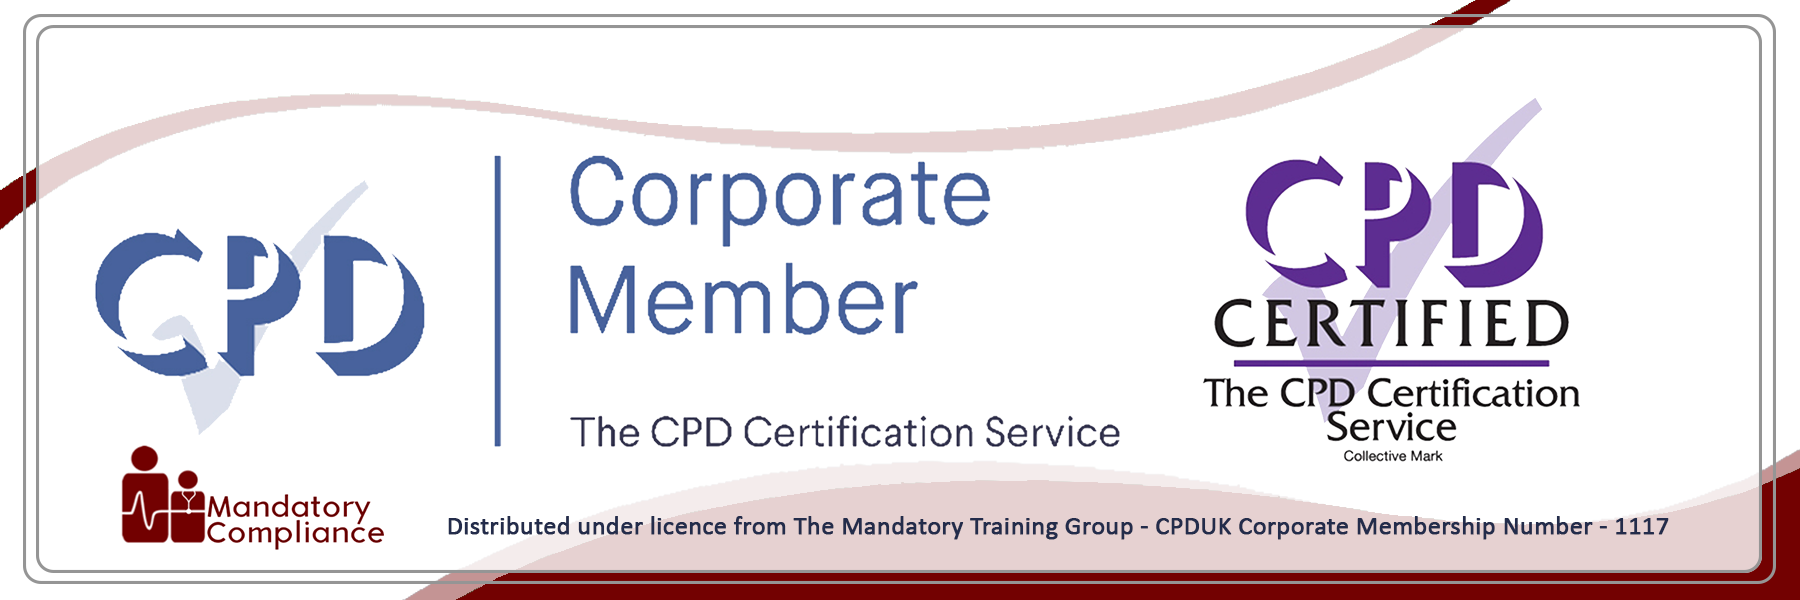 GDPR for Health and Social Care - Level 2 - E-Learning Courses - Mandatory Compliance UK -